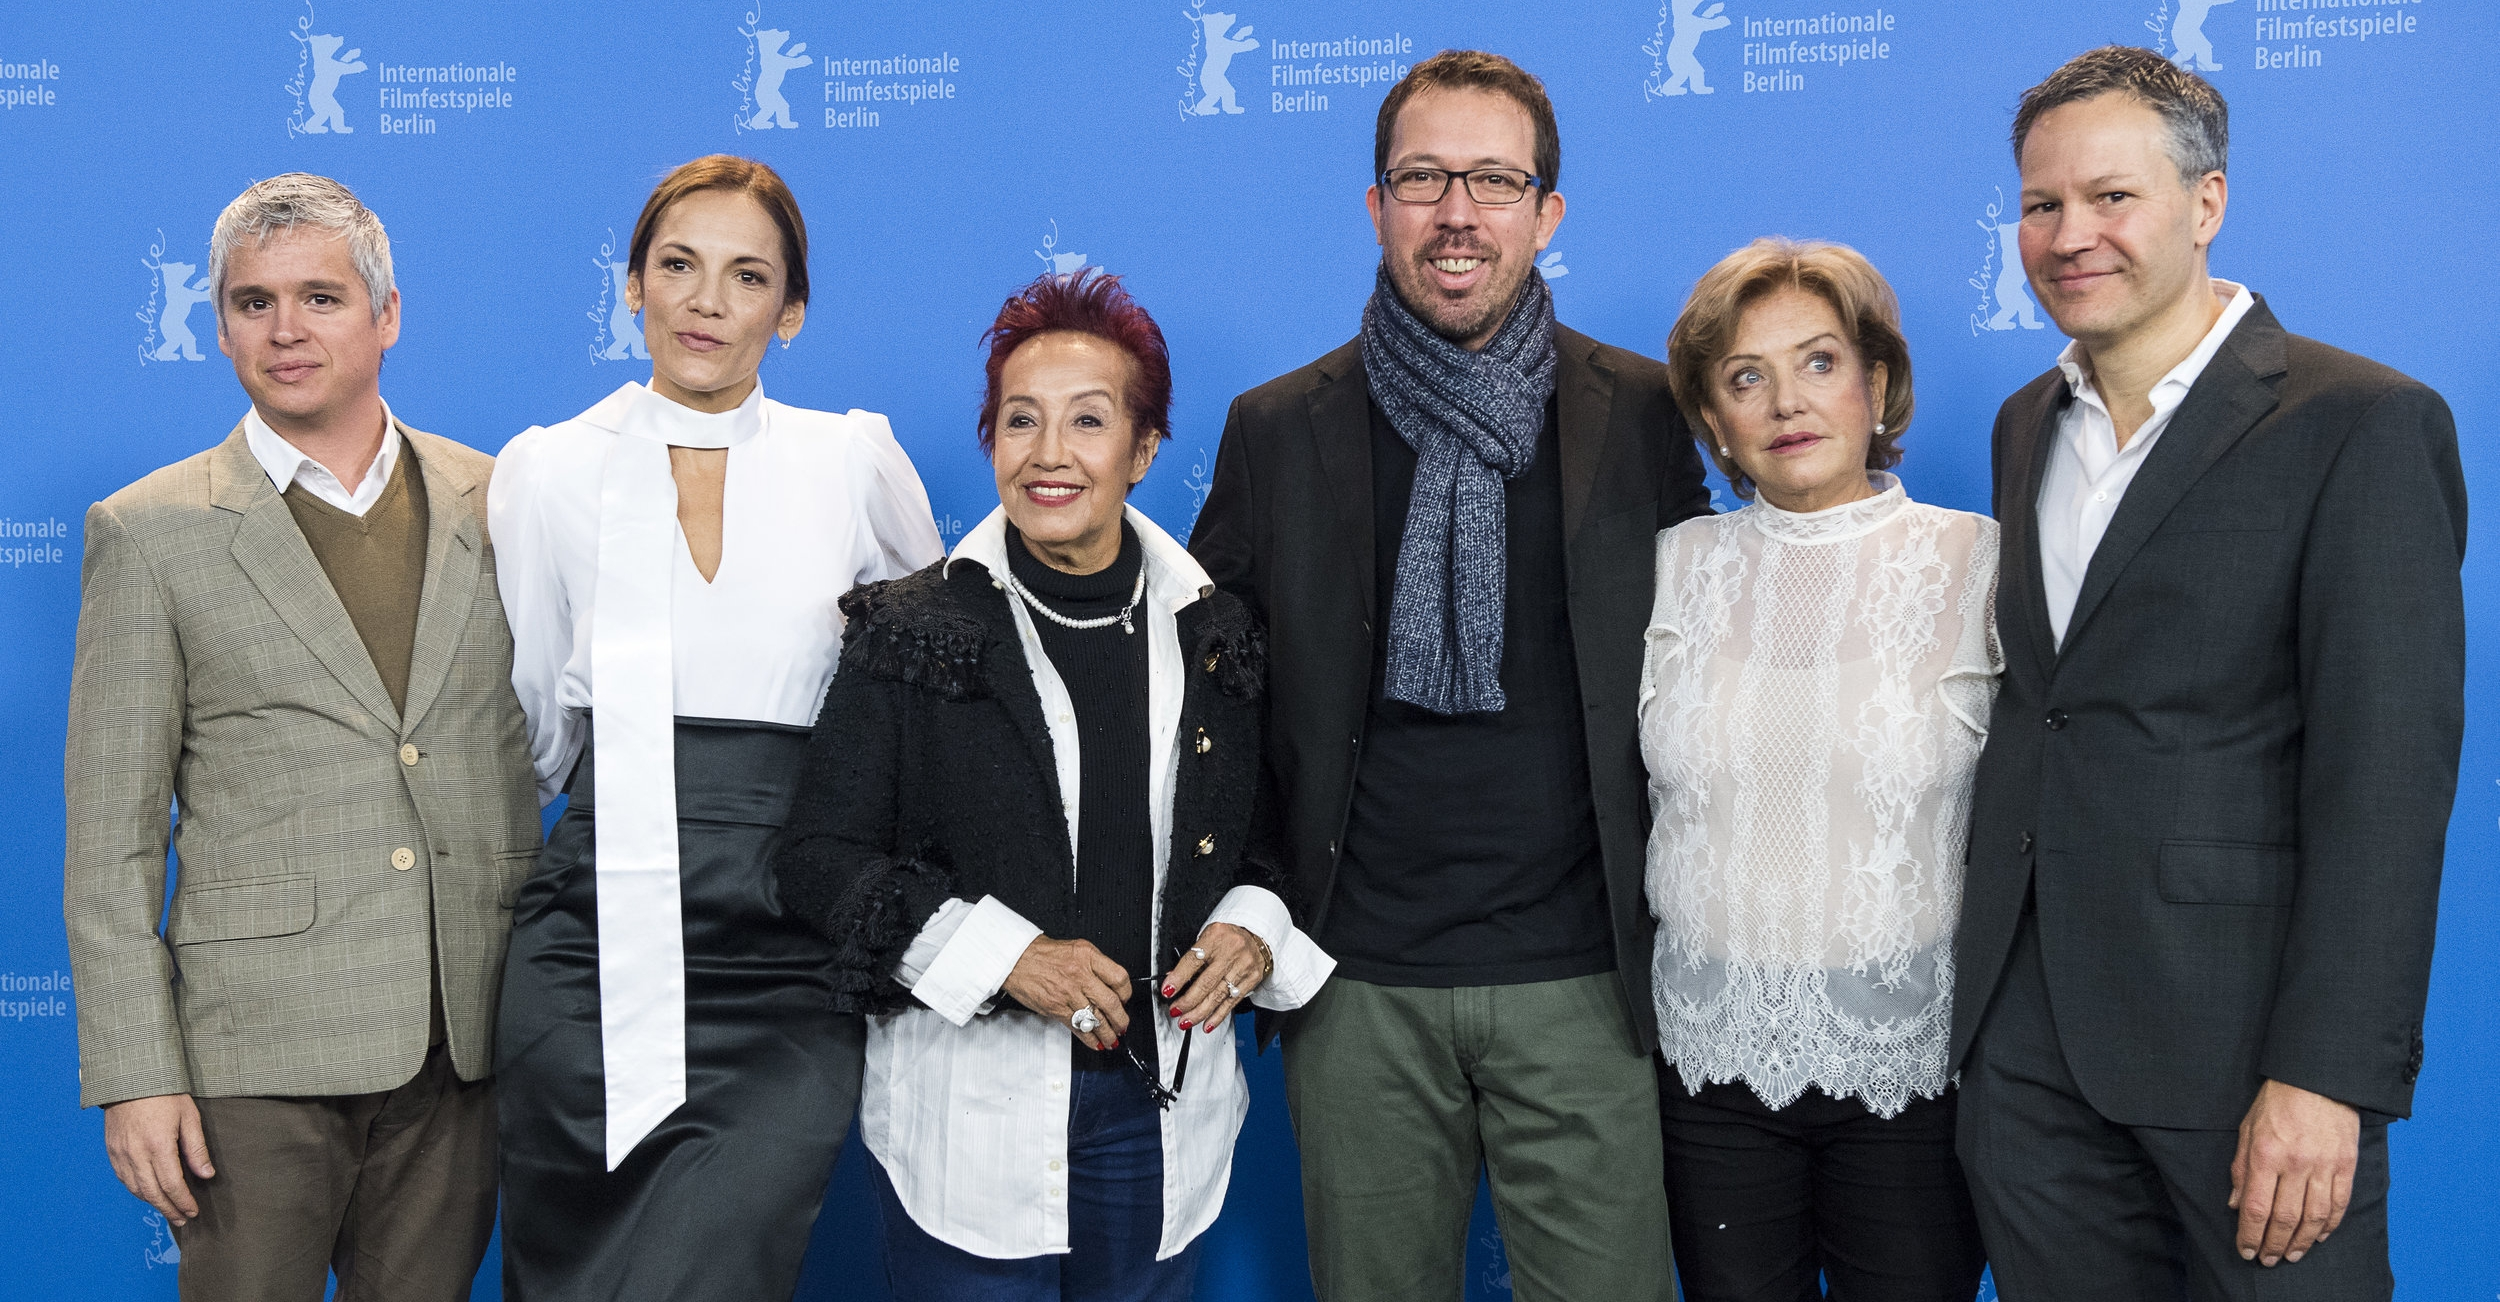 BERLINALE 2018 - Main cast with director and producers